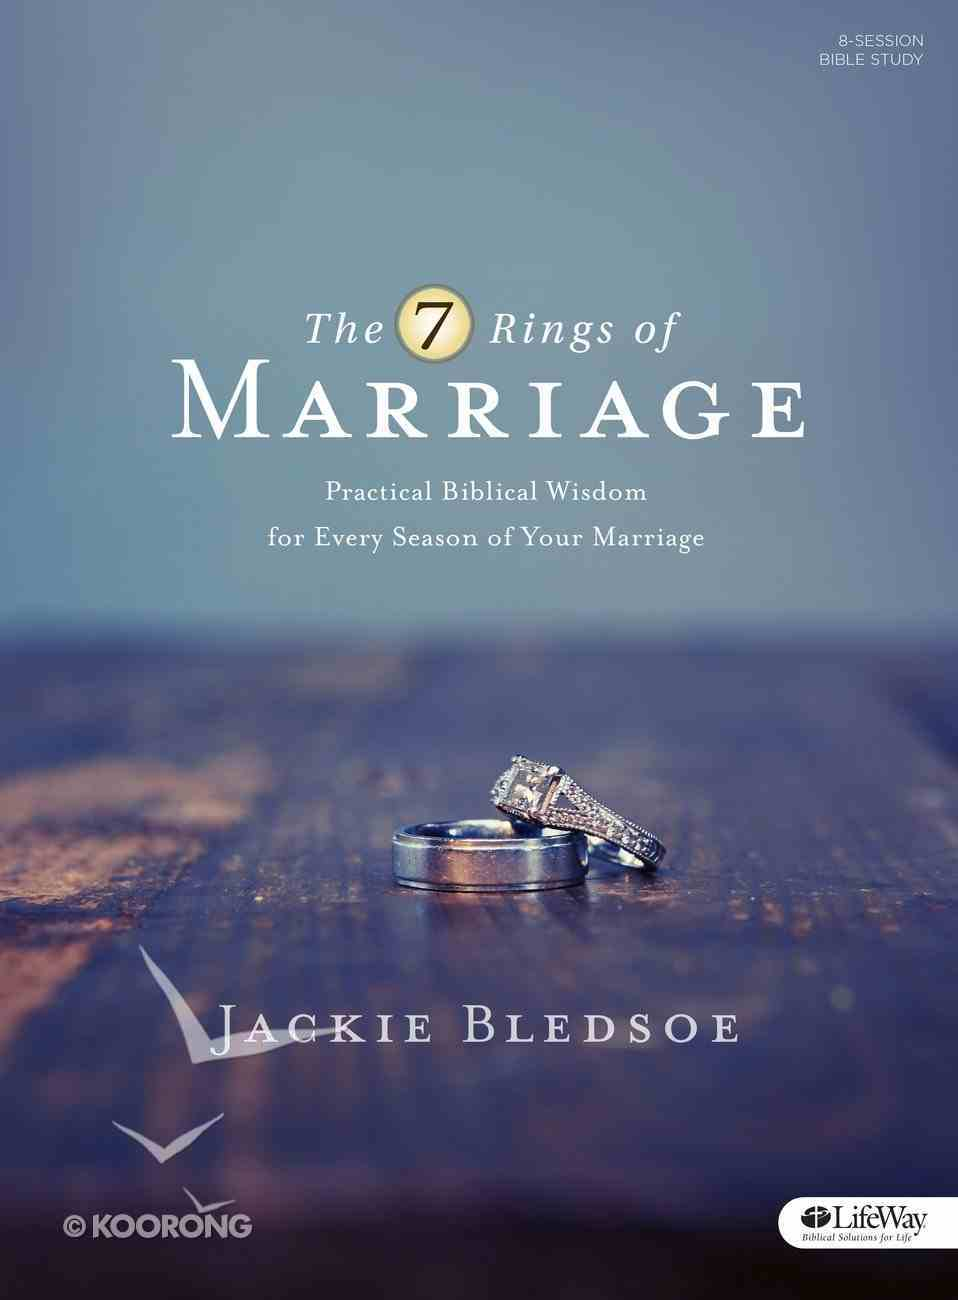 The 7 Rings of Marriage (Bible Study Book: 8 Session-study And 7 Weeks Of Homework) Paperback